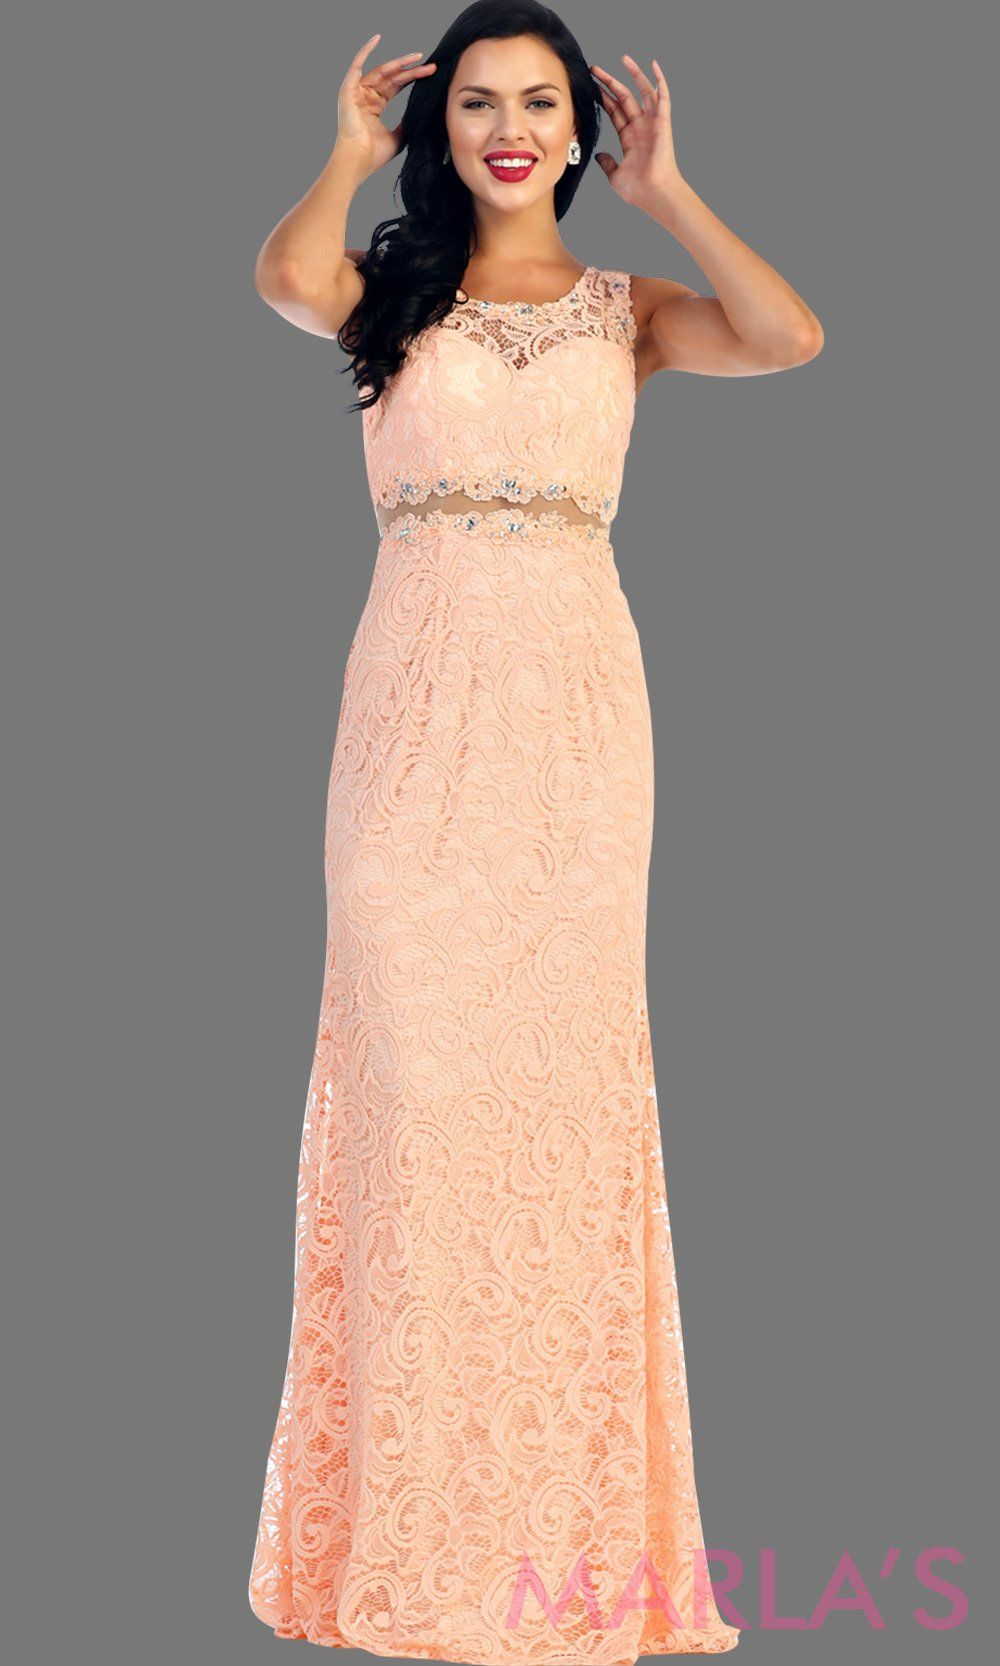 Long simple lace light pink two piece dress. This blush dress is a perfect long prom dress. The red illusion neckline and waist creates a two piece prom look. Can be worn as a wedding guest dress, worn at a formal event or gala. AVailable in plus sizes